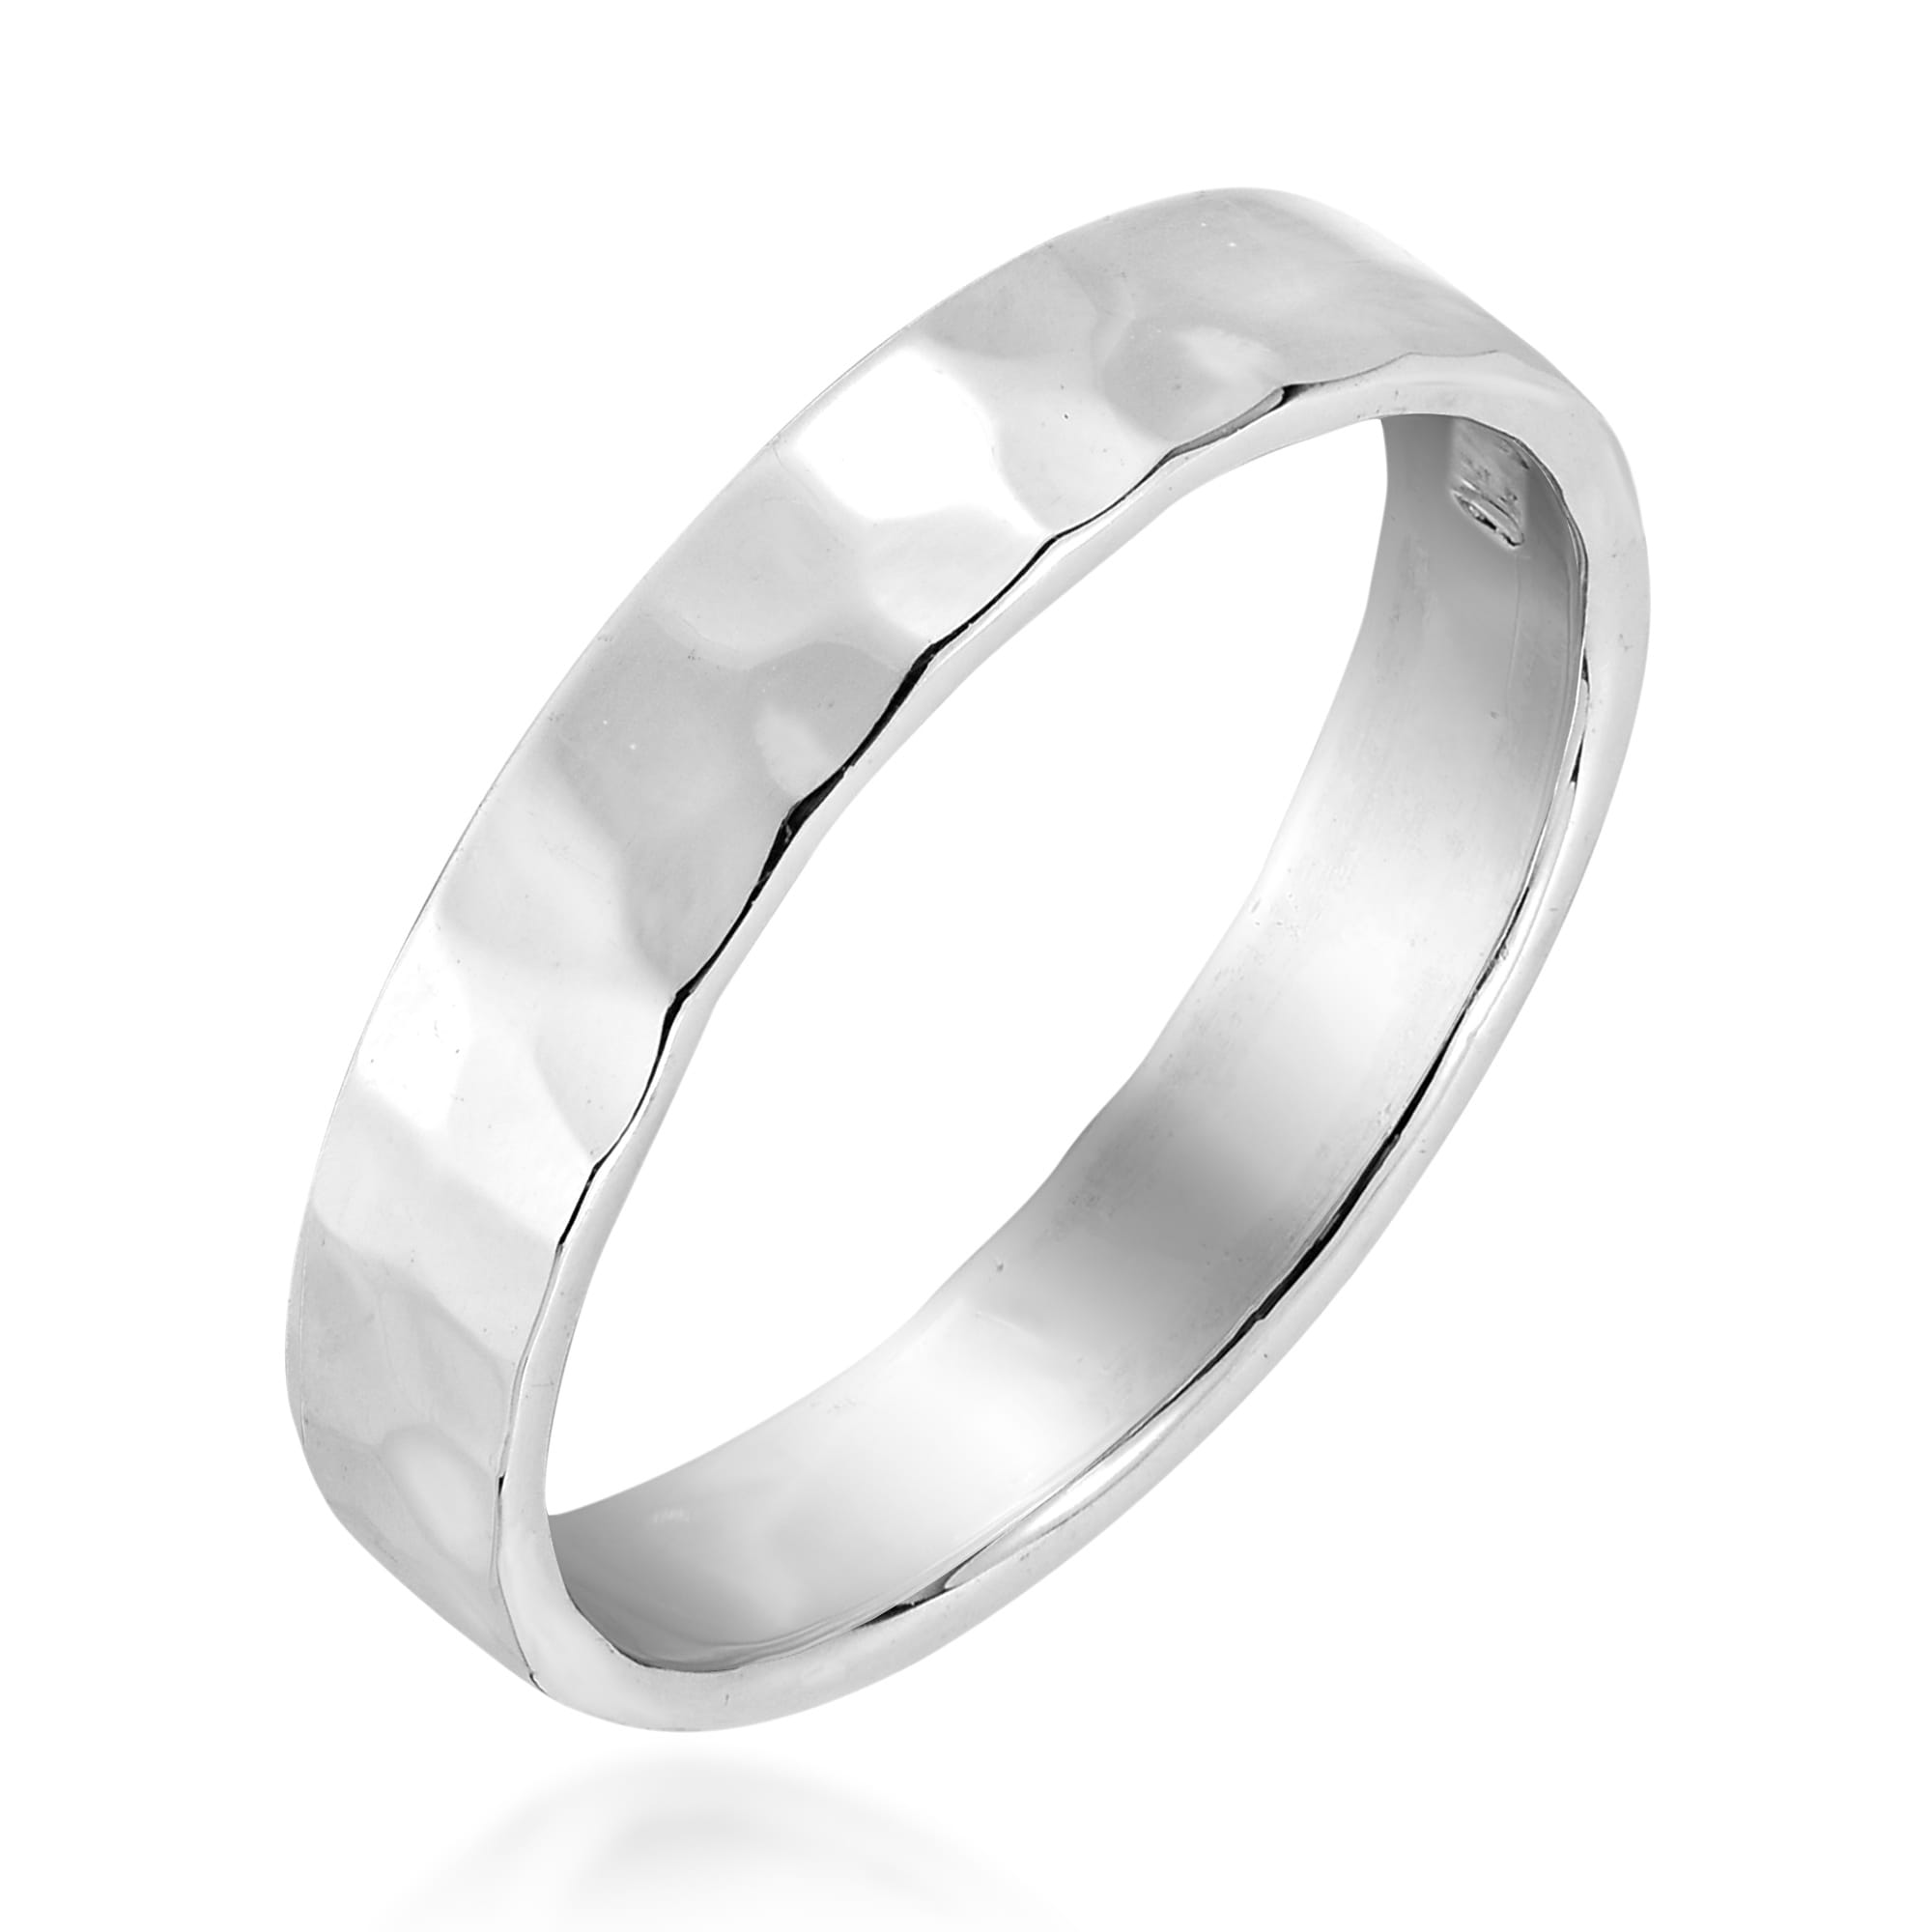 Jewelry & Watches .925 Sterling Silver 5 Mm Comfort Fit Double Milgrain Wedding Band Ring Clear-Cut Texture